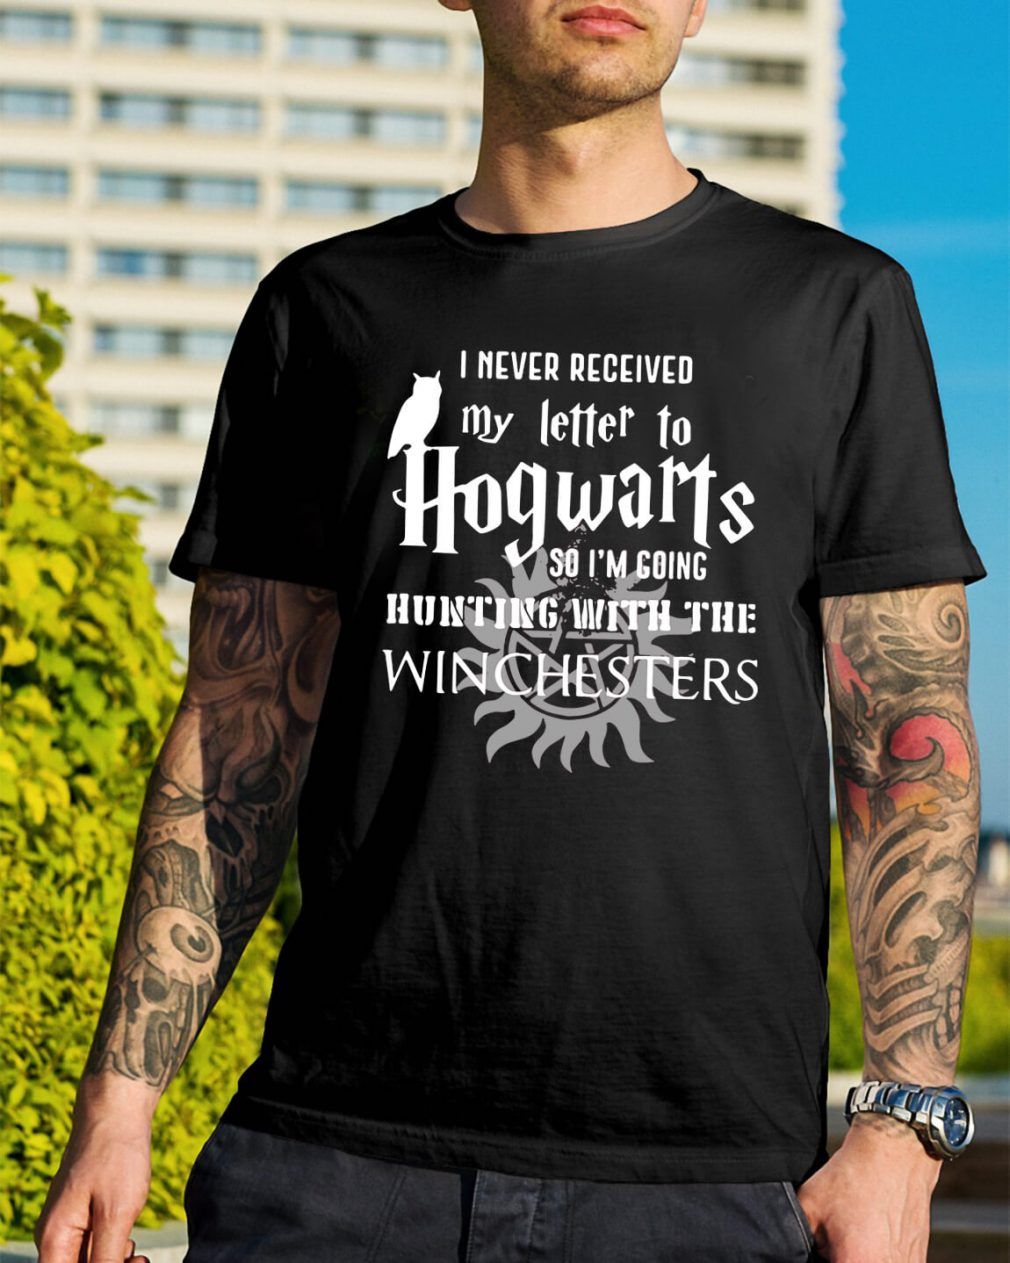 Harry Potter I never received my letter to Hogwarts shirt